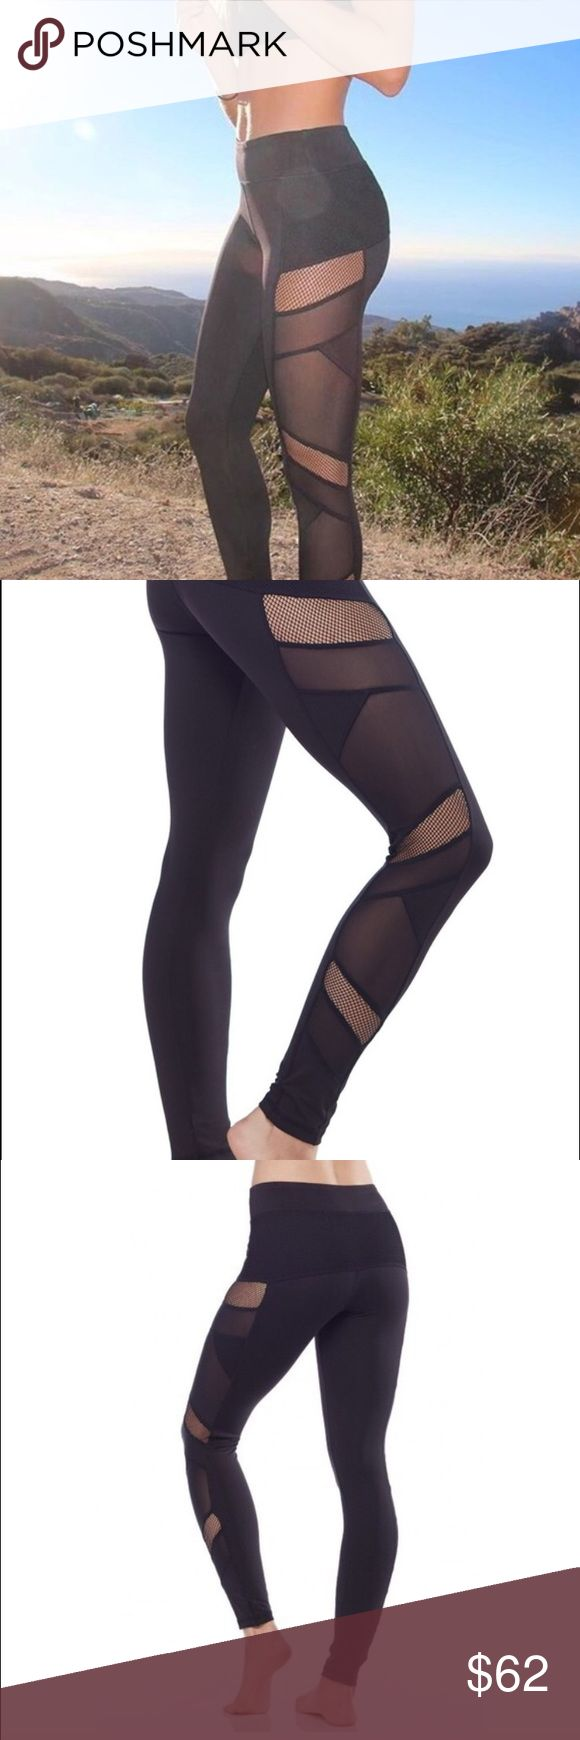 LAST 1!! SALE TODAY ONLY Sexy Mesh Leggings  These are so hot right now!! You can wear them to yoga, for running, or just anytime you want to look casual and awesome   they really are super flattering and very comfortable. Electric Yoga is Beverly Hills-based and retail price is $108 get them while they're in stock  price is firm unless bundle! Electric Yoga Pants Leggings